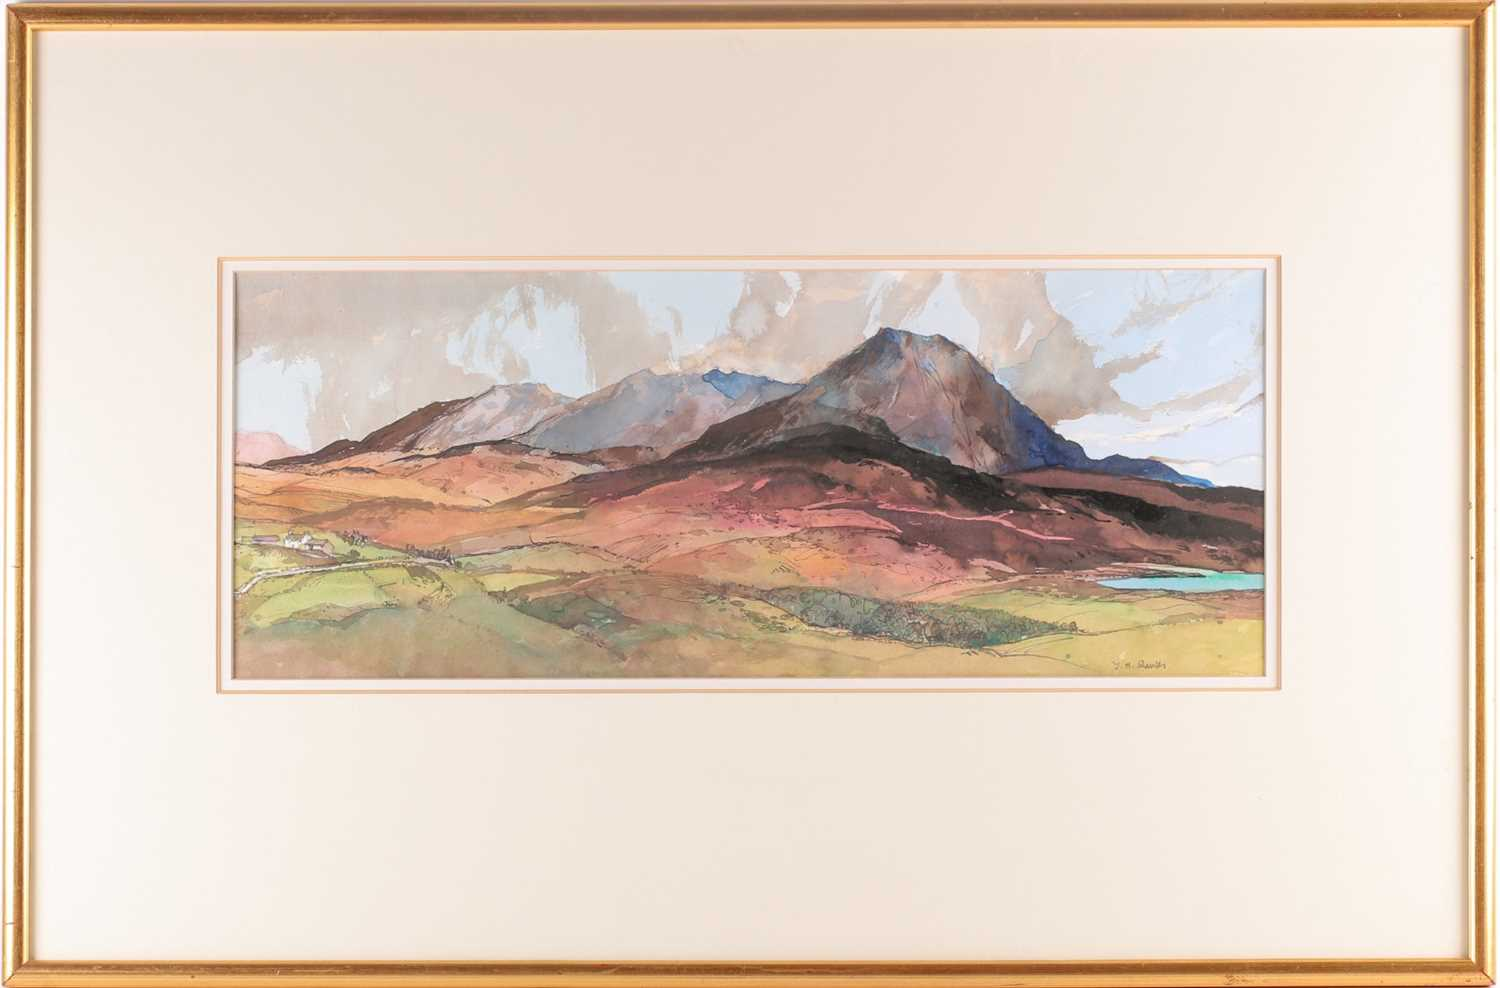 Tom Shanks, (Scottish. 1921-2020), Meall an Fhuarain Sutherland, watercolour and body colour, signed